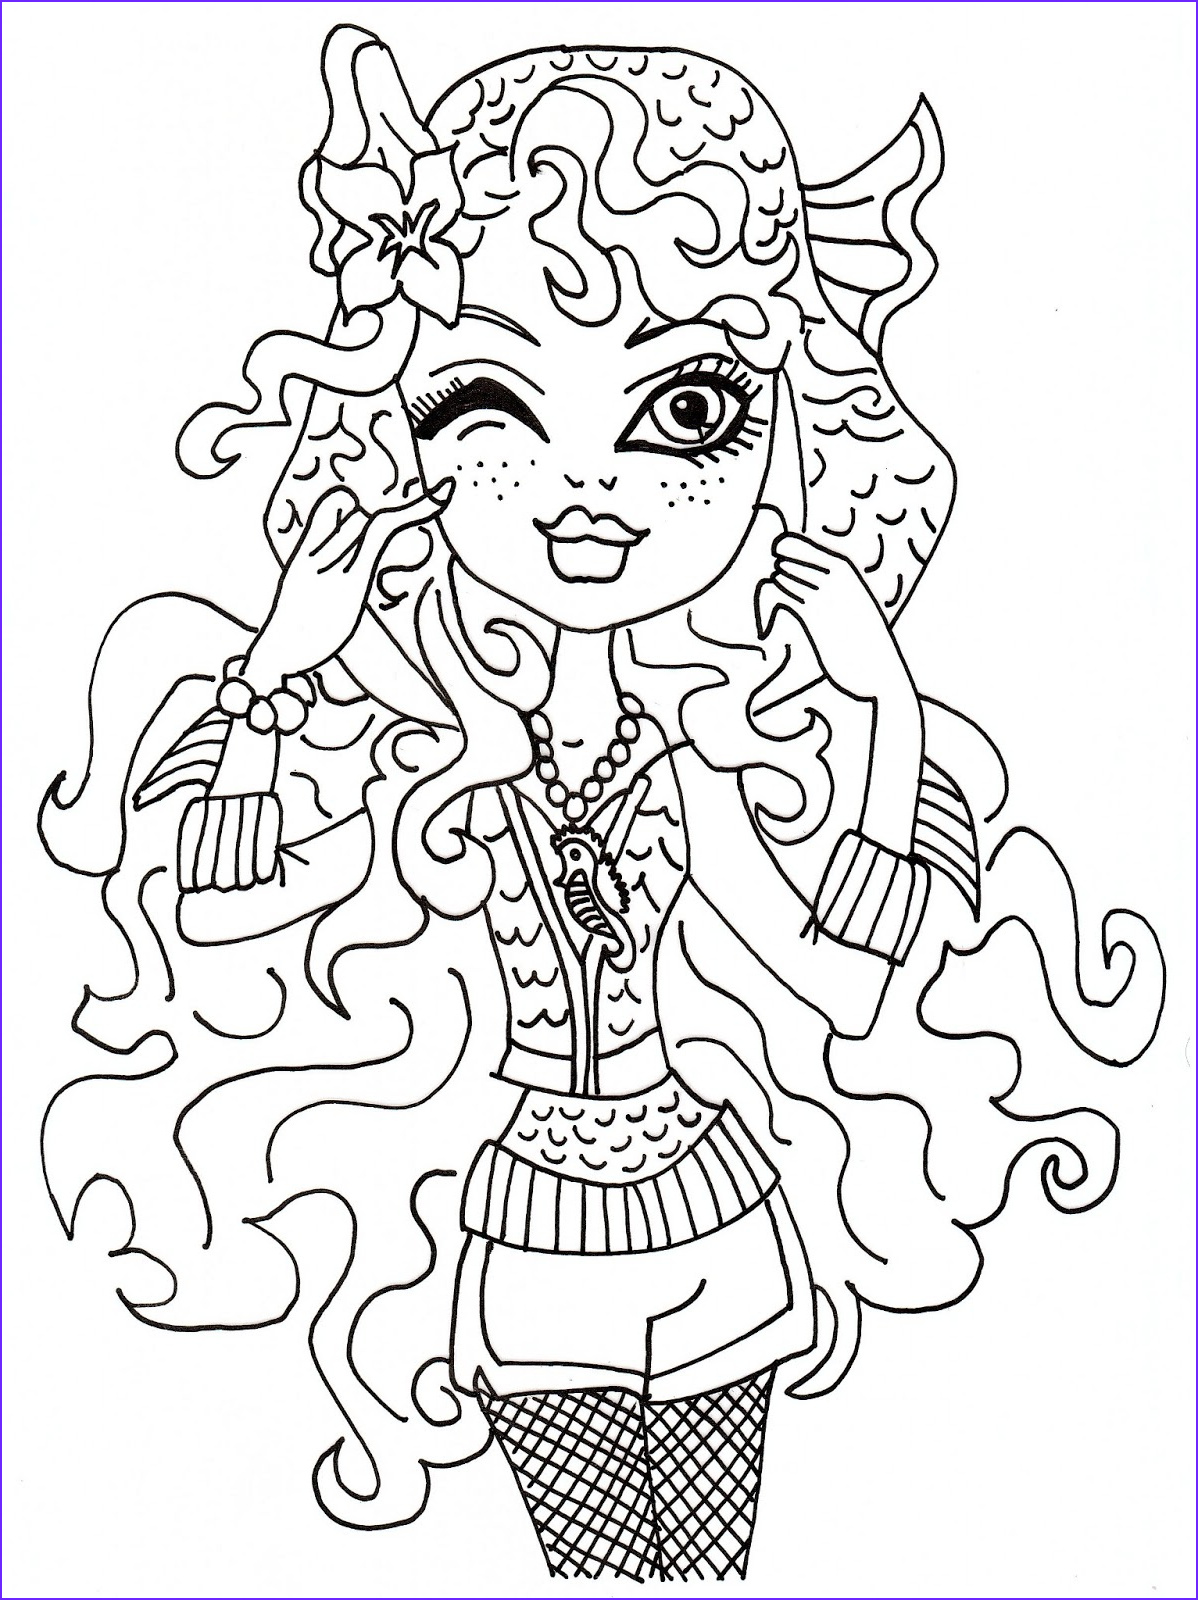 Photos Into Coloring Pages New Stock Free Printable Monster High Coloring Pages May 2013